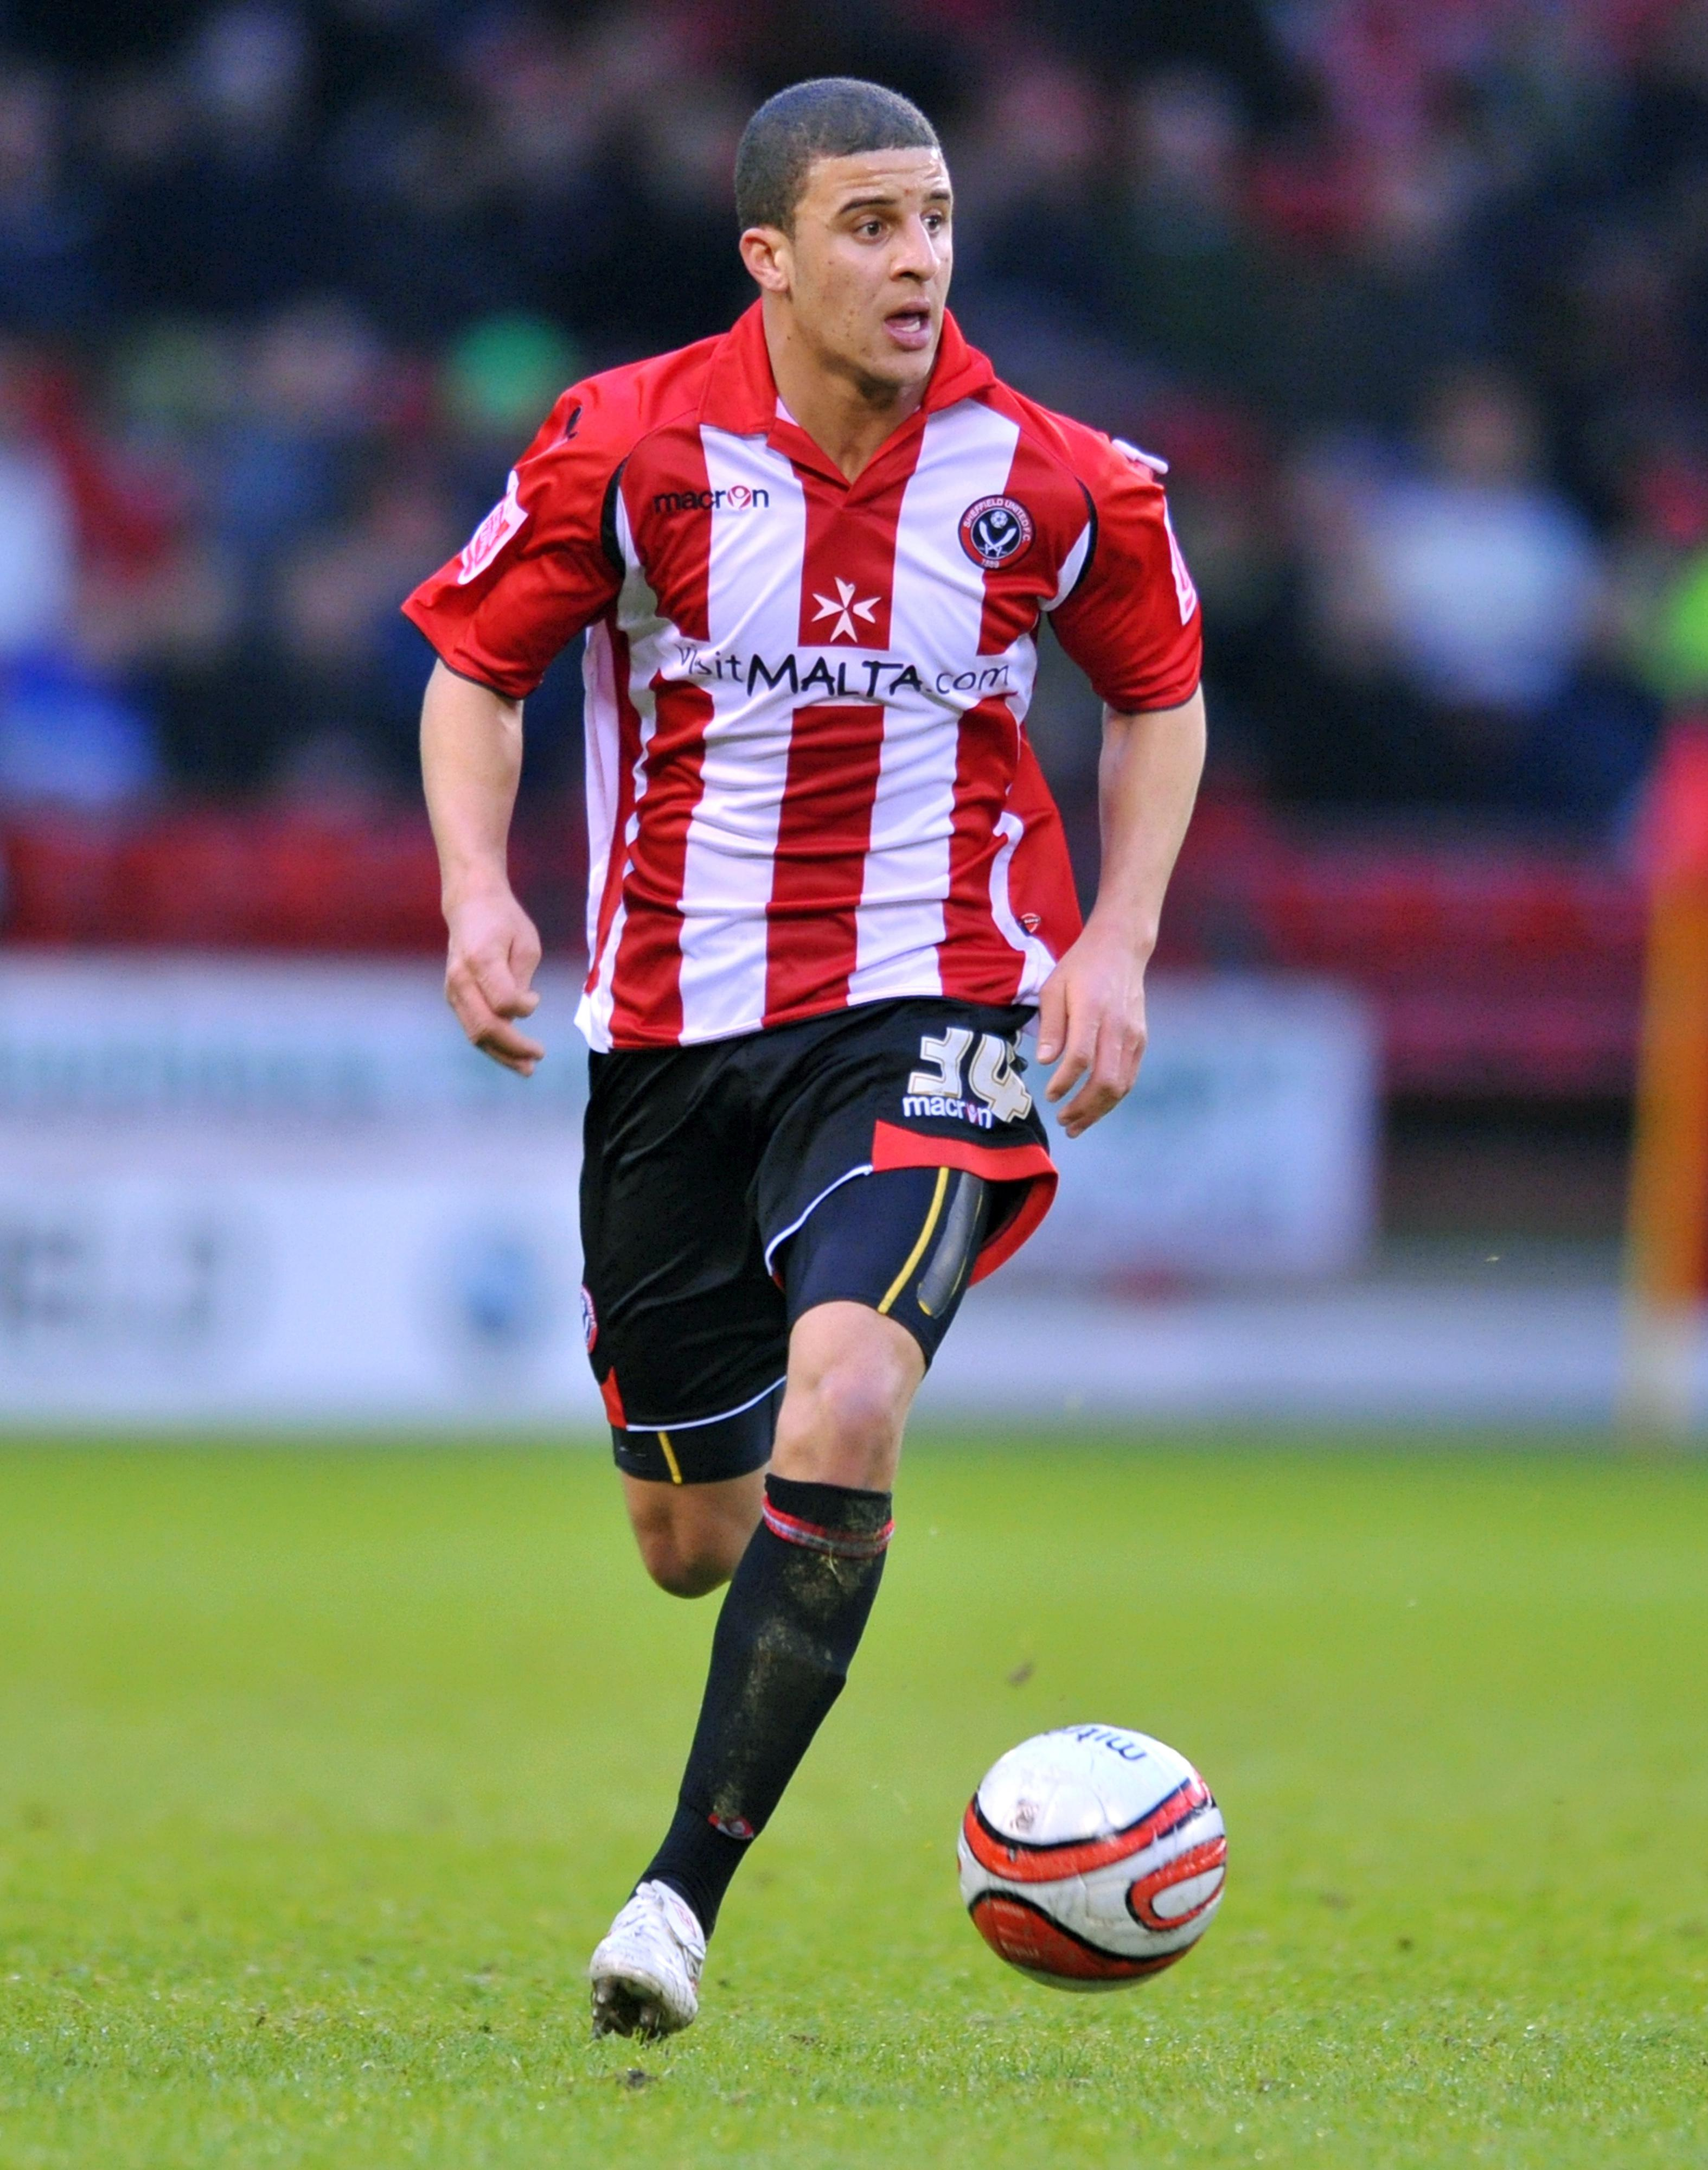 The full-back started his career at Sheffield United